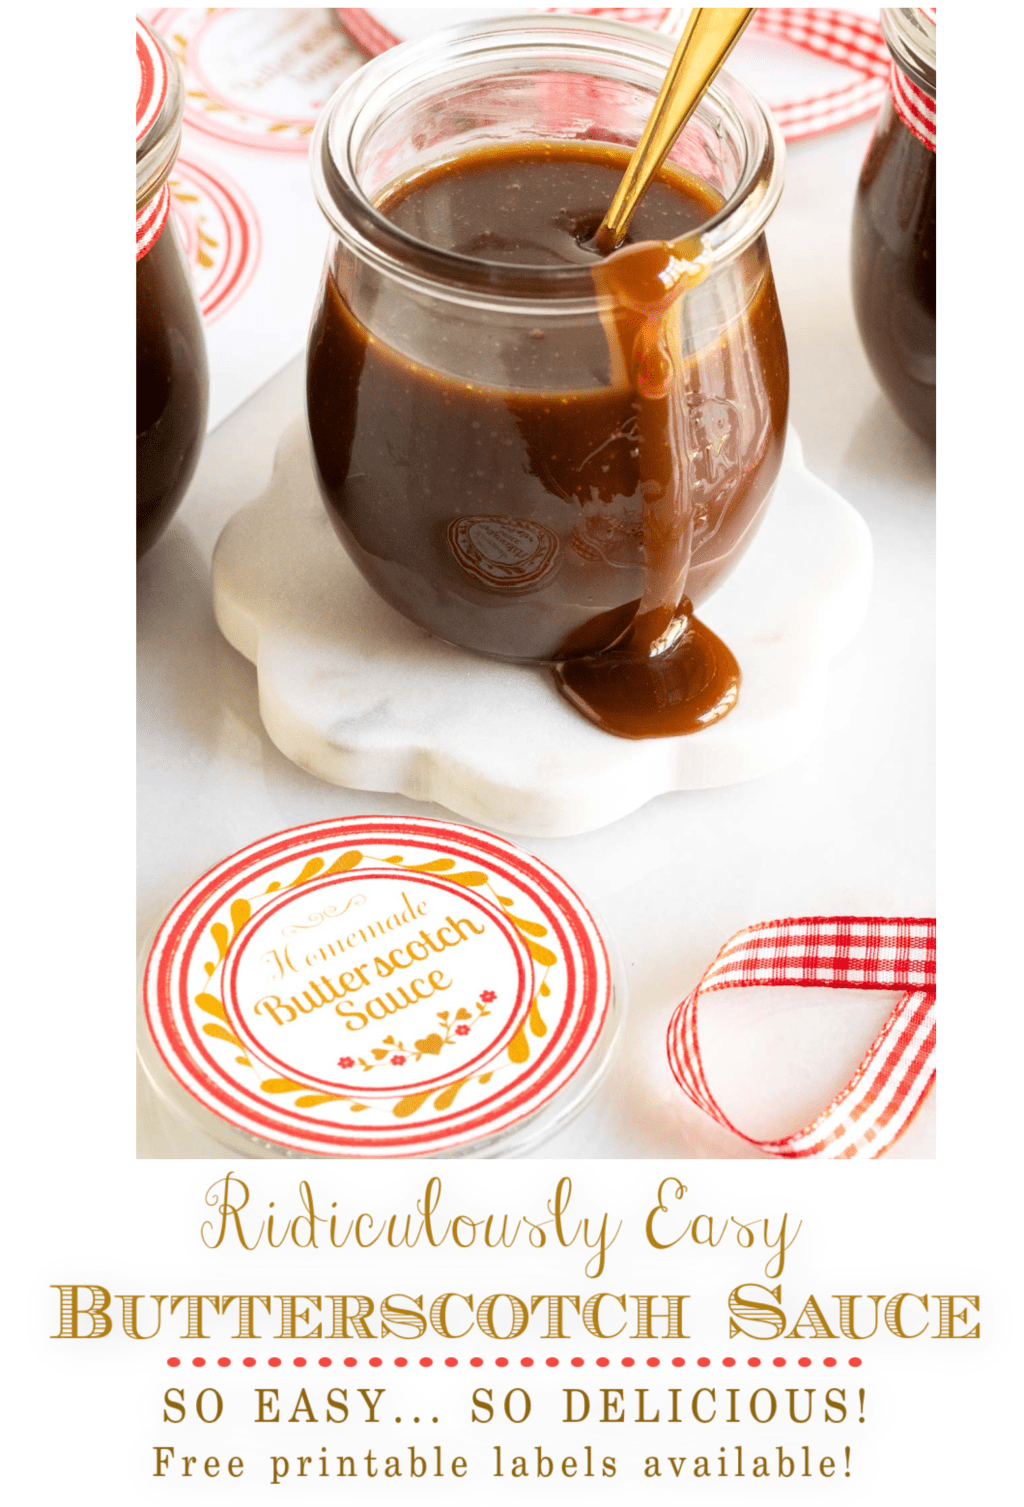 Ridiculously Easy Butterscotch Sauce